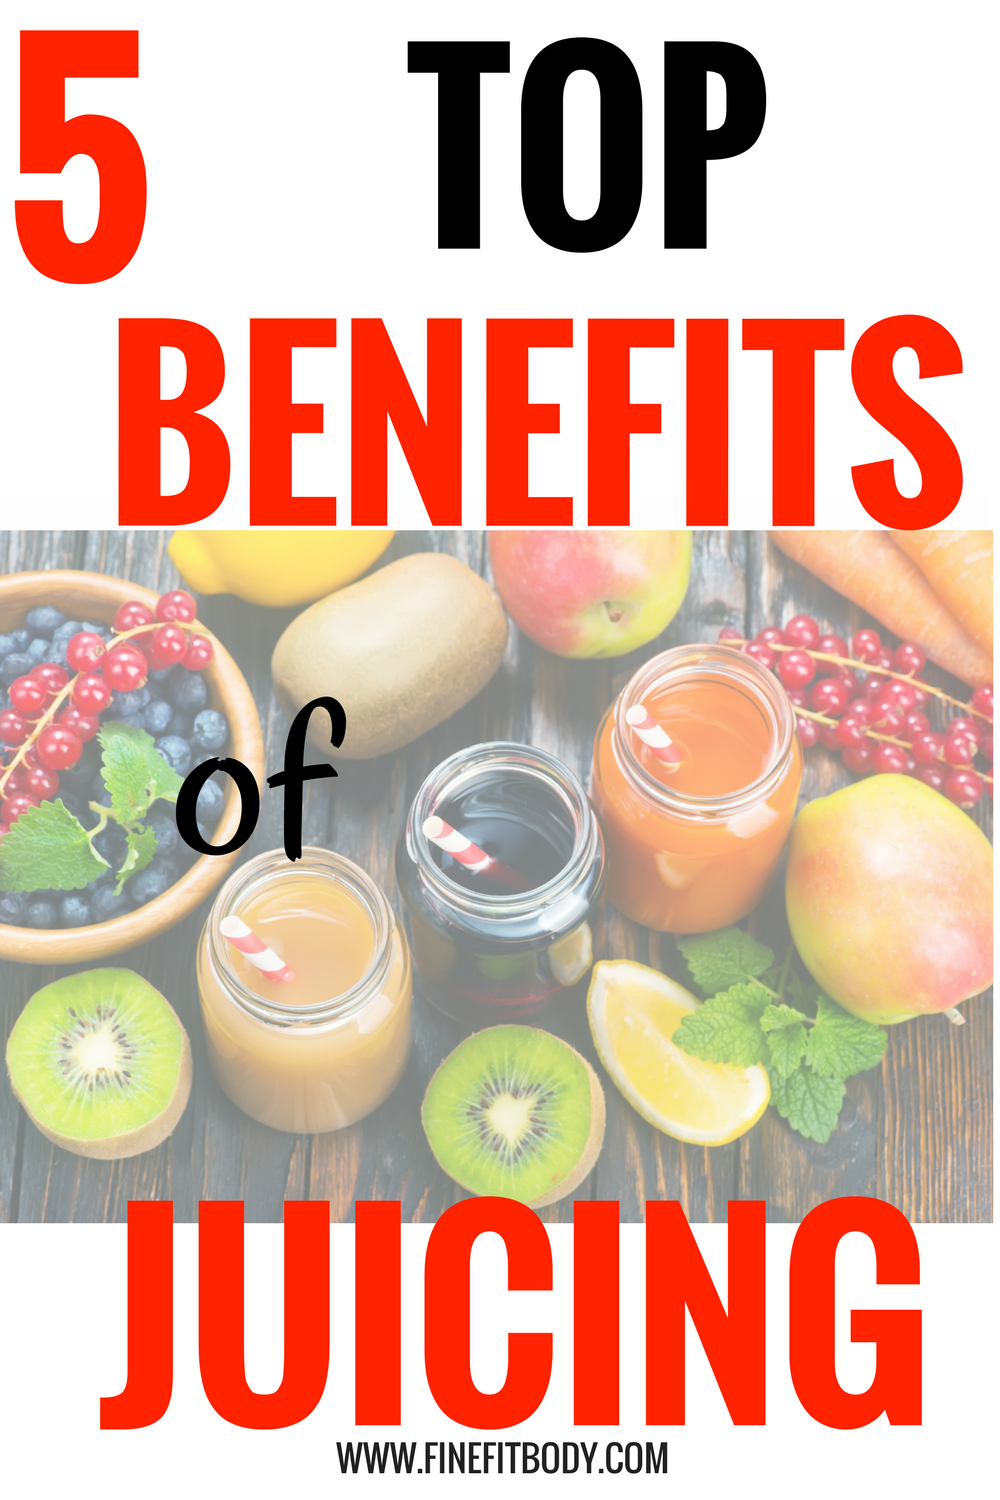 Look at all these benefits of juicing! Juicing is so great for weight loss, diets, and detox! I am definitely going to start juicing today, even though I am a beginner.